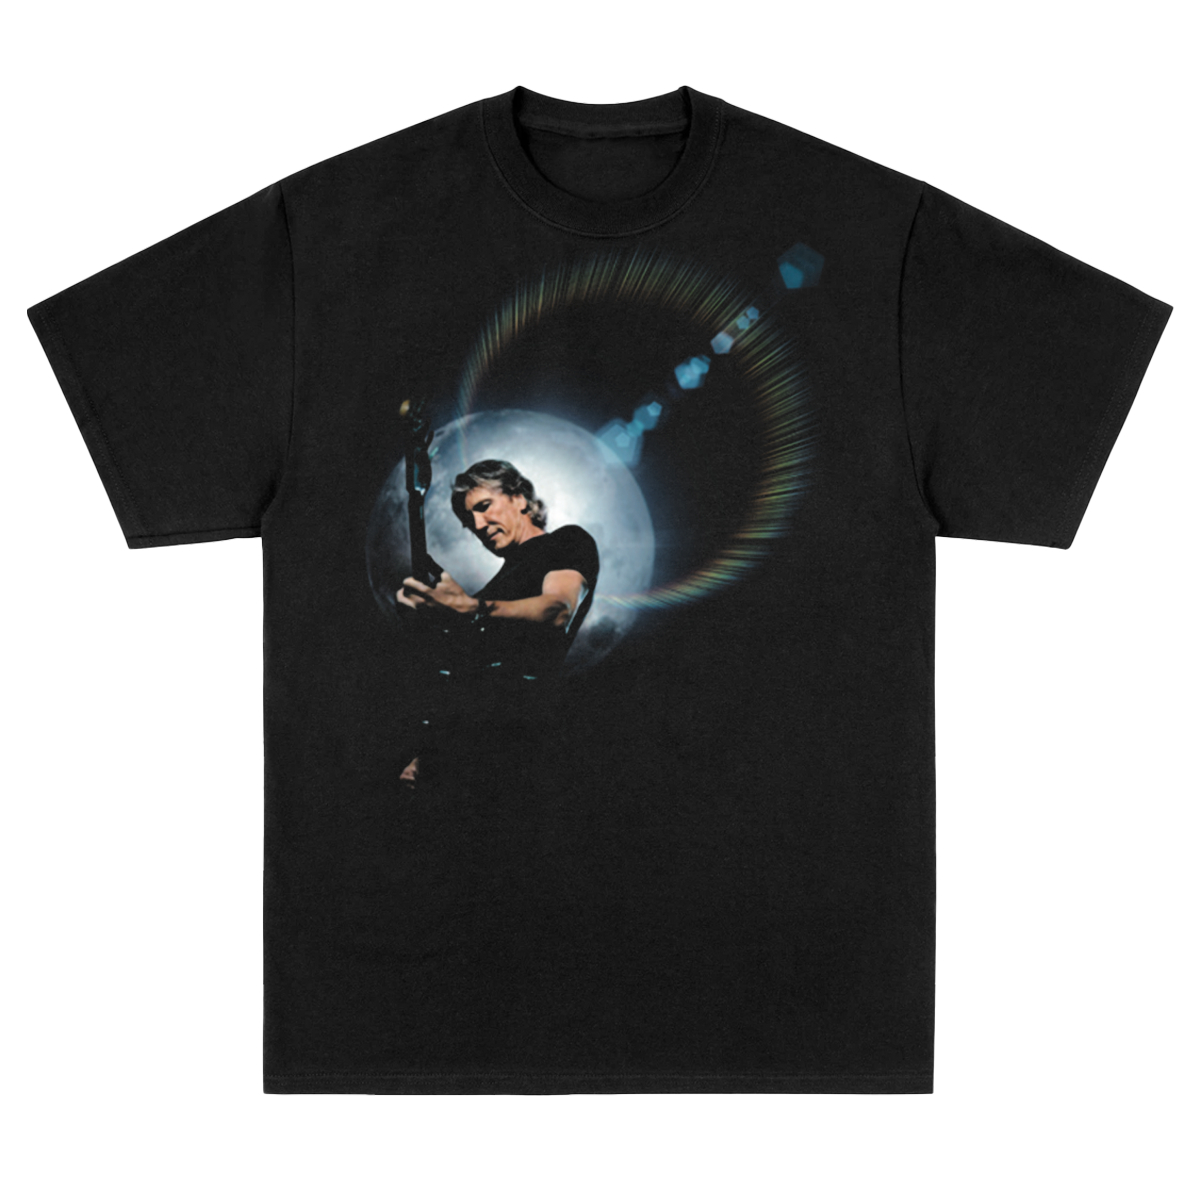 Roger Waters' DSOTM Tour Tee